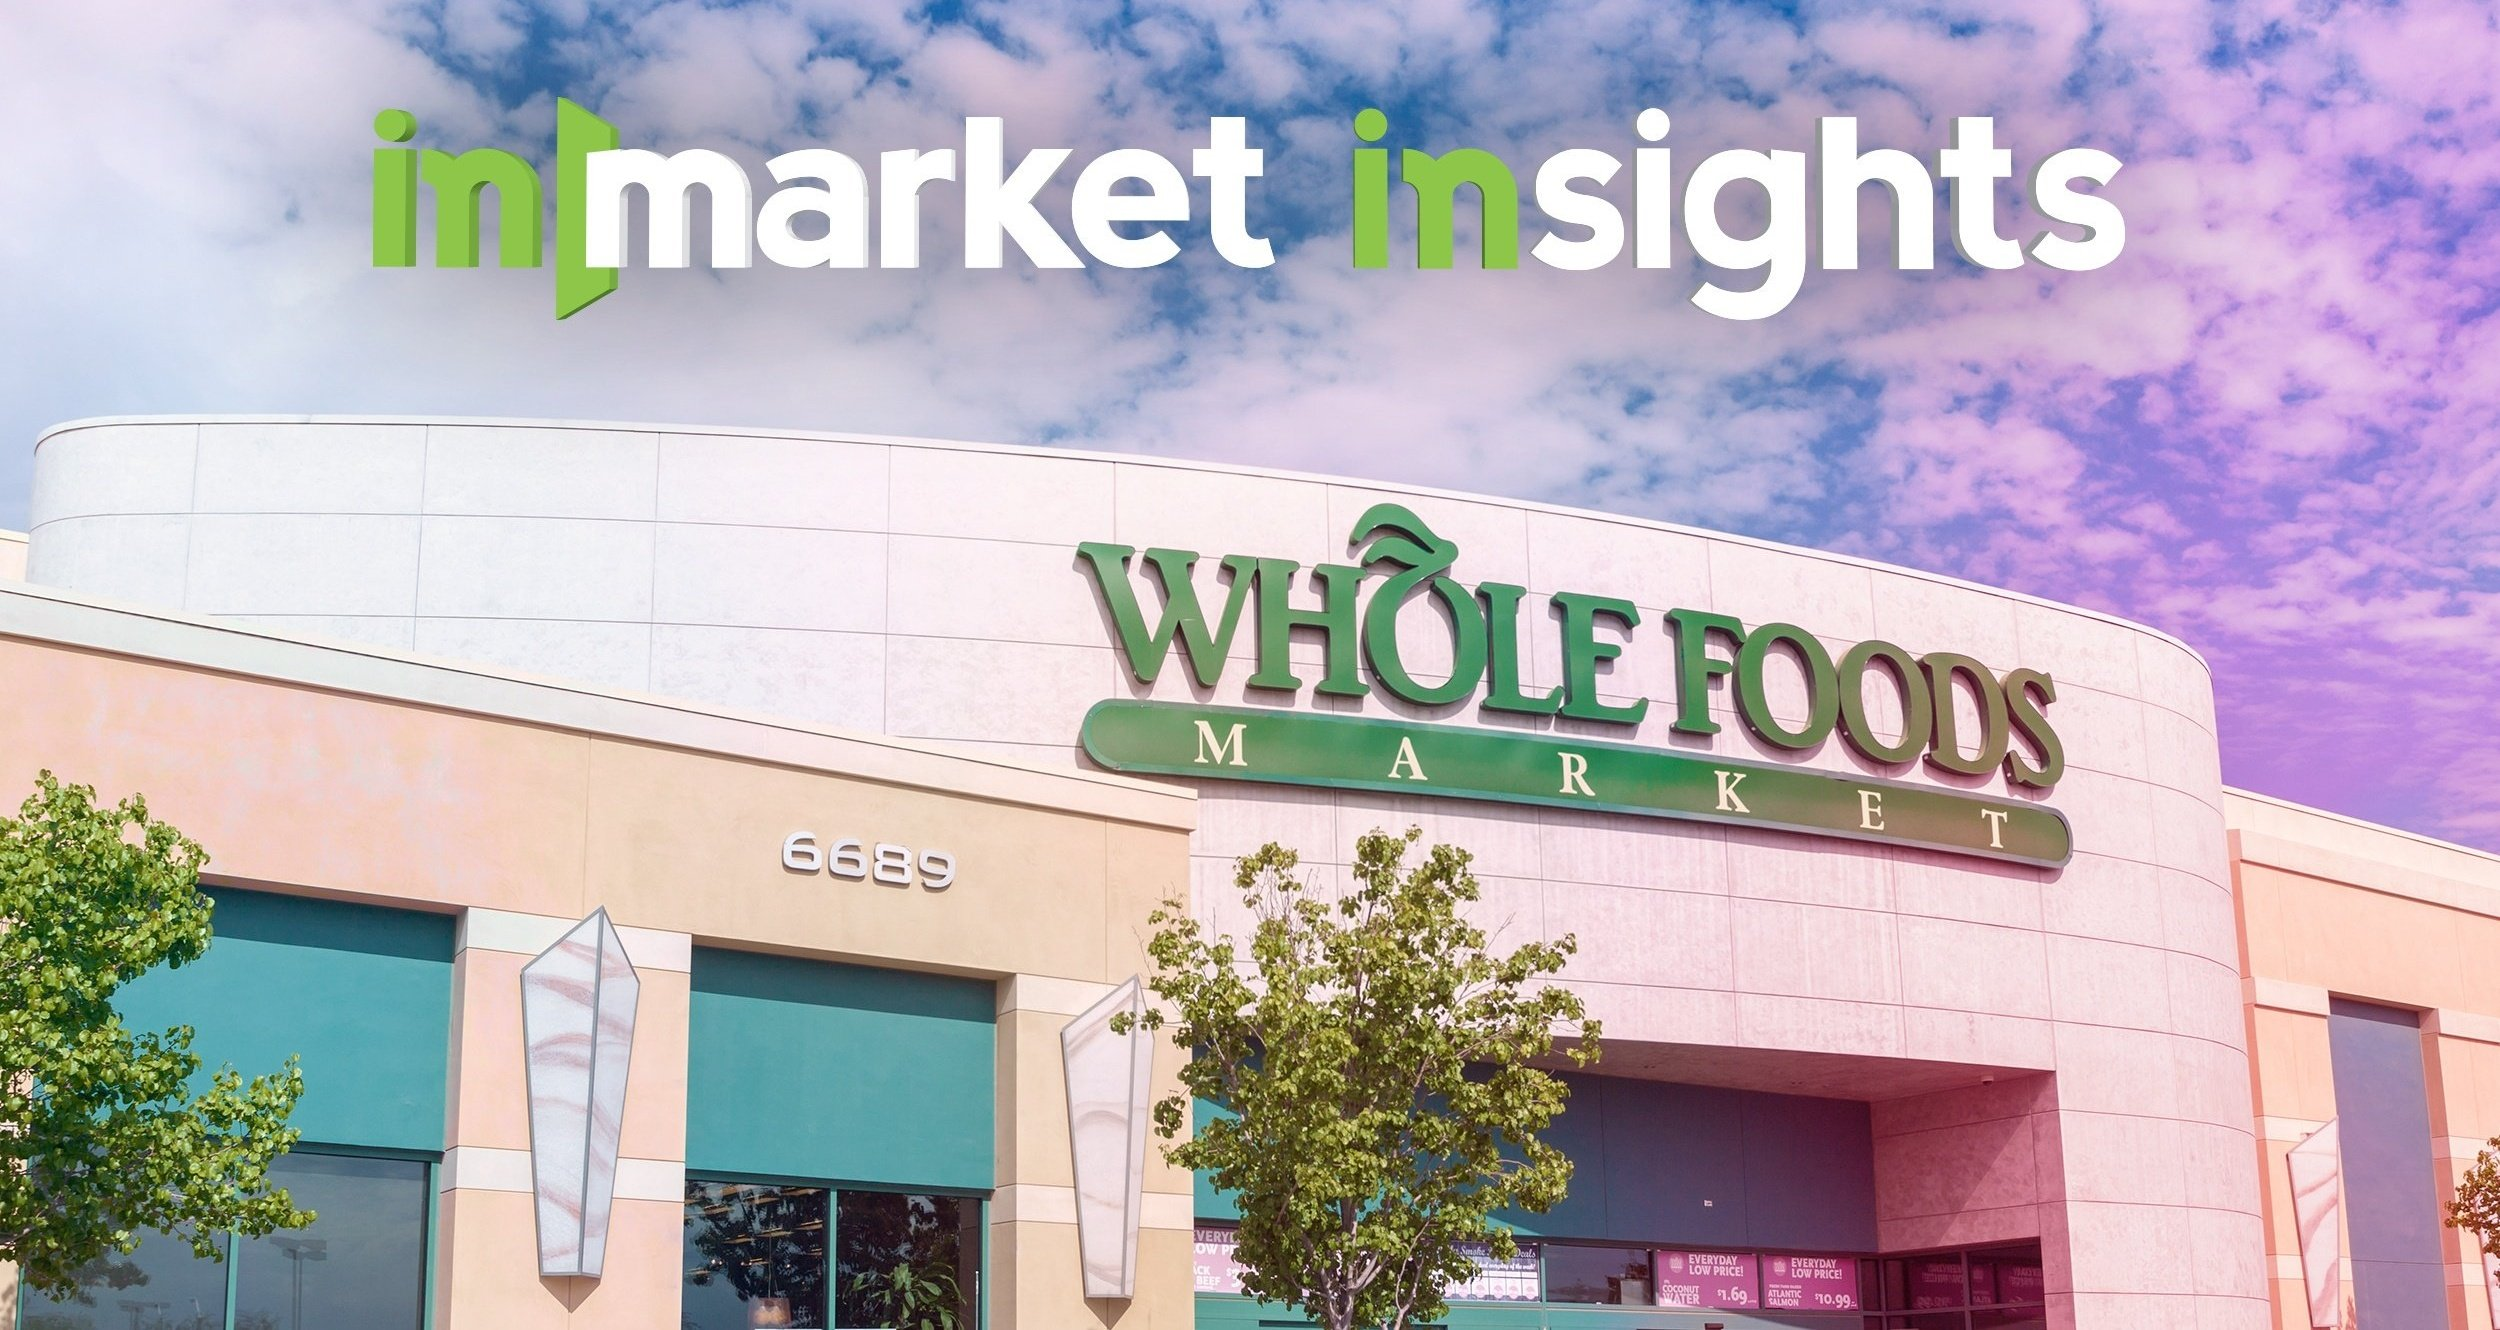 whole_foods_header-096581-edited.jpg